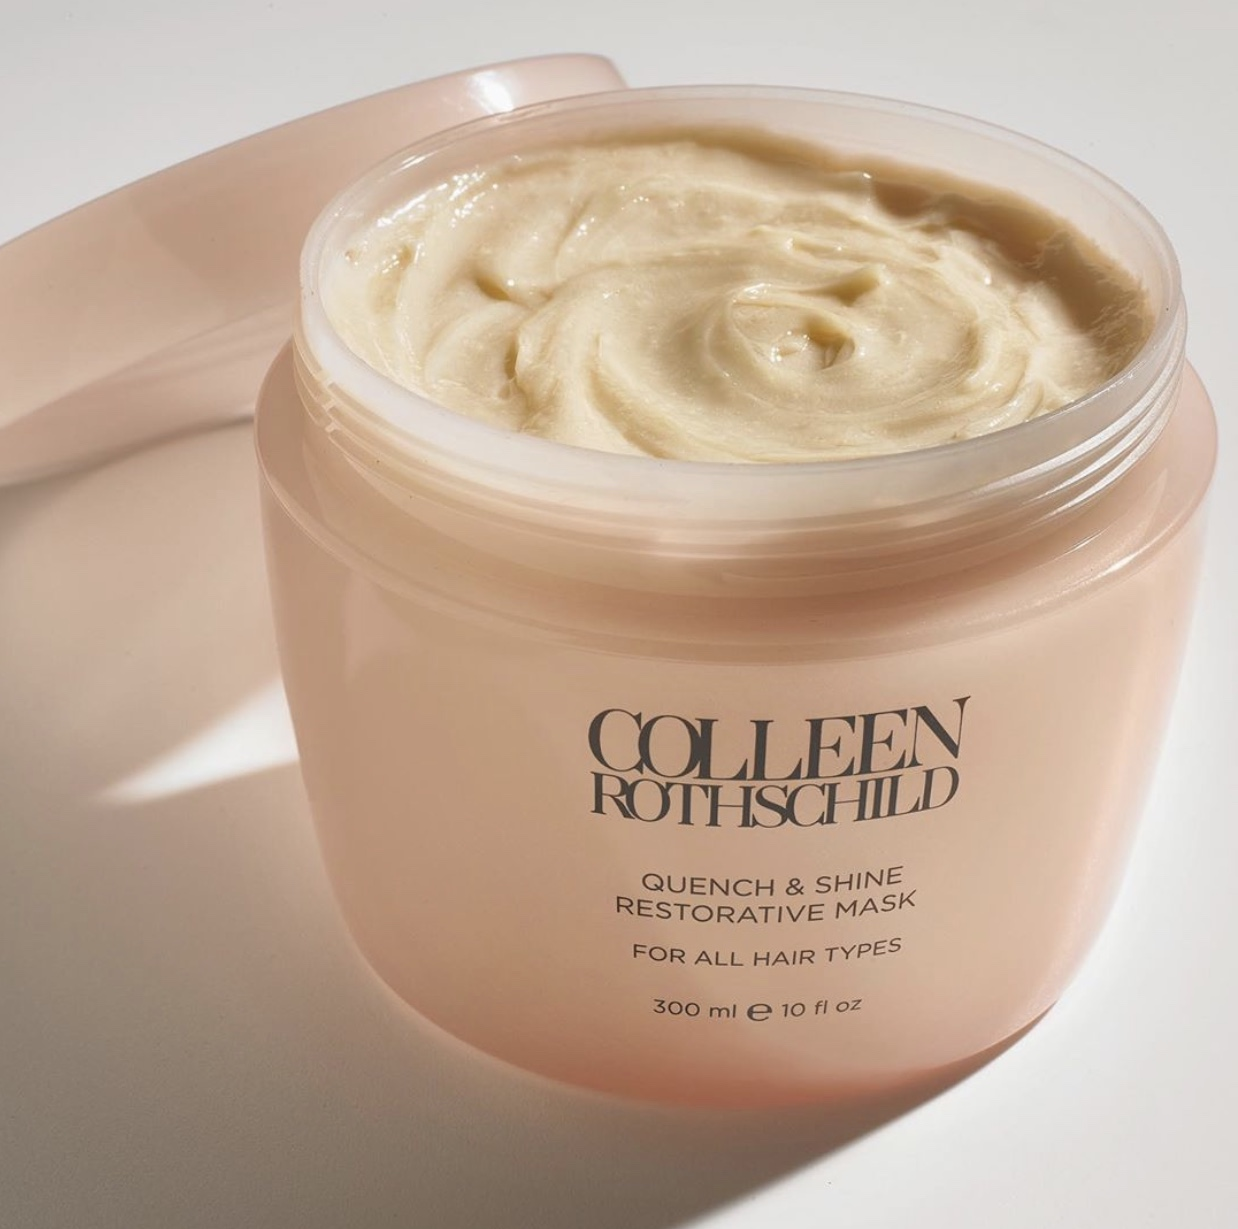 Colleen Rothschild quench and shine restorative mask